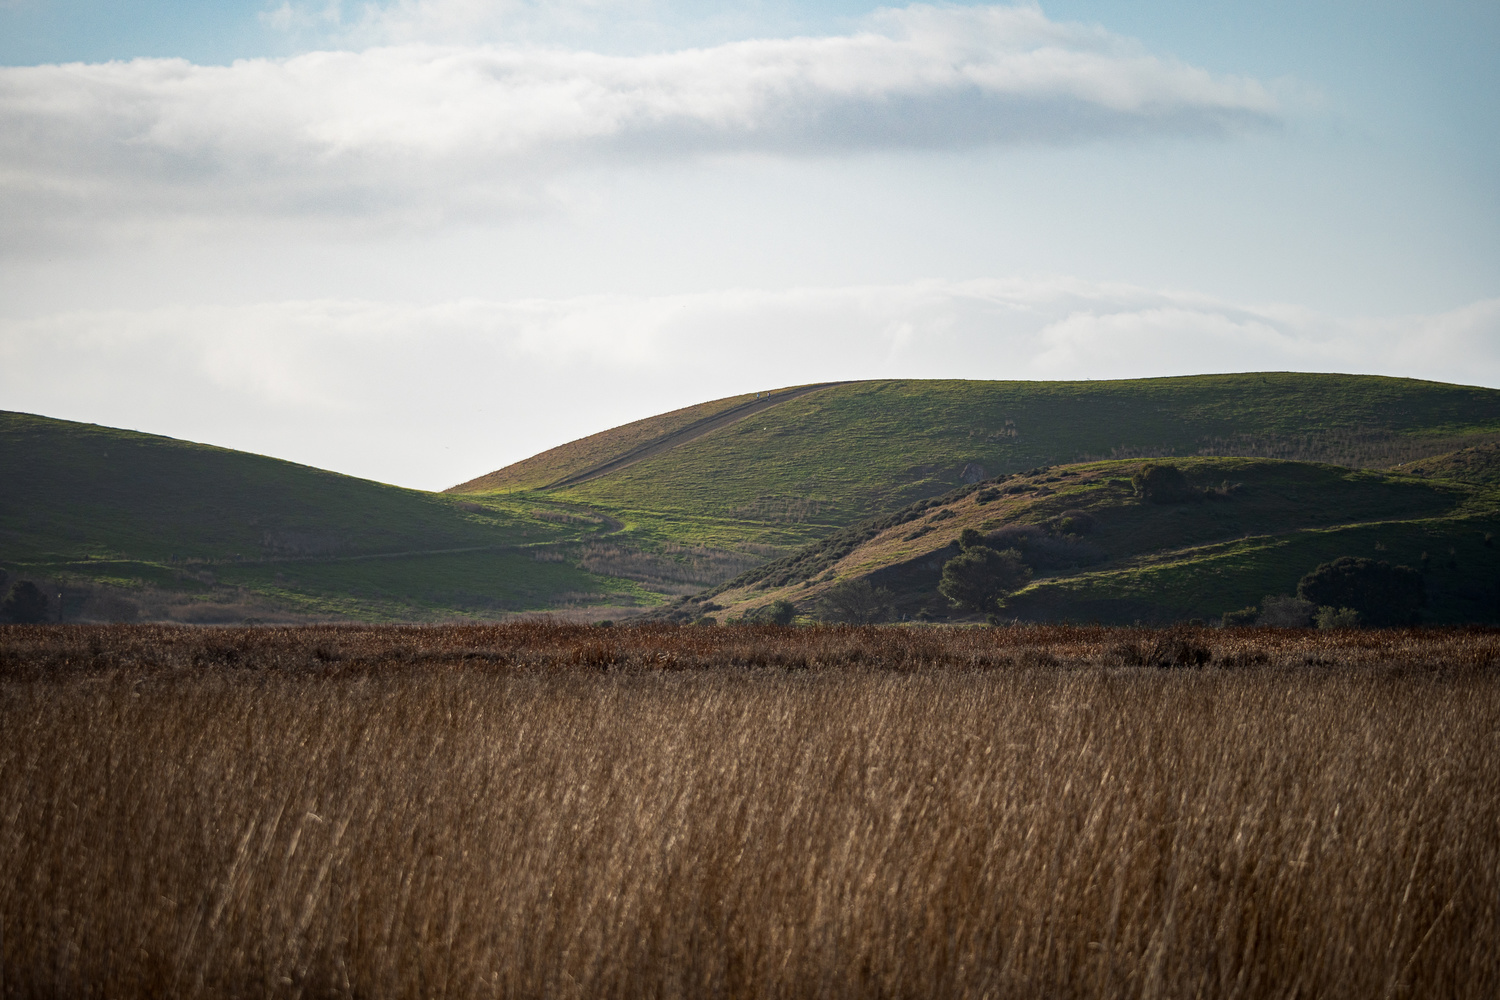 Evening at Coyote Hills by David Yoon